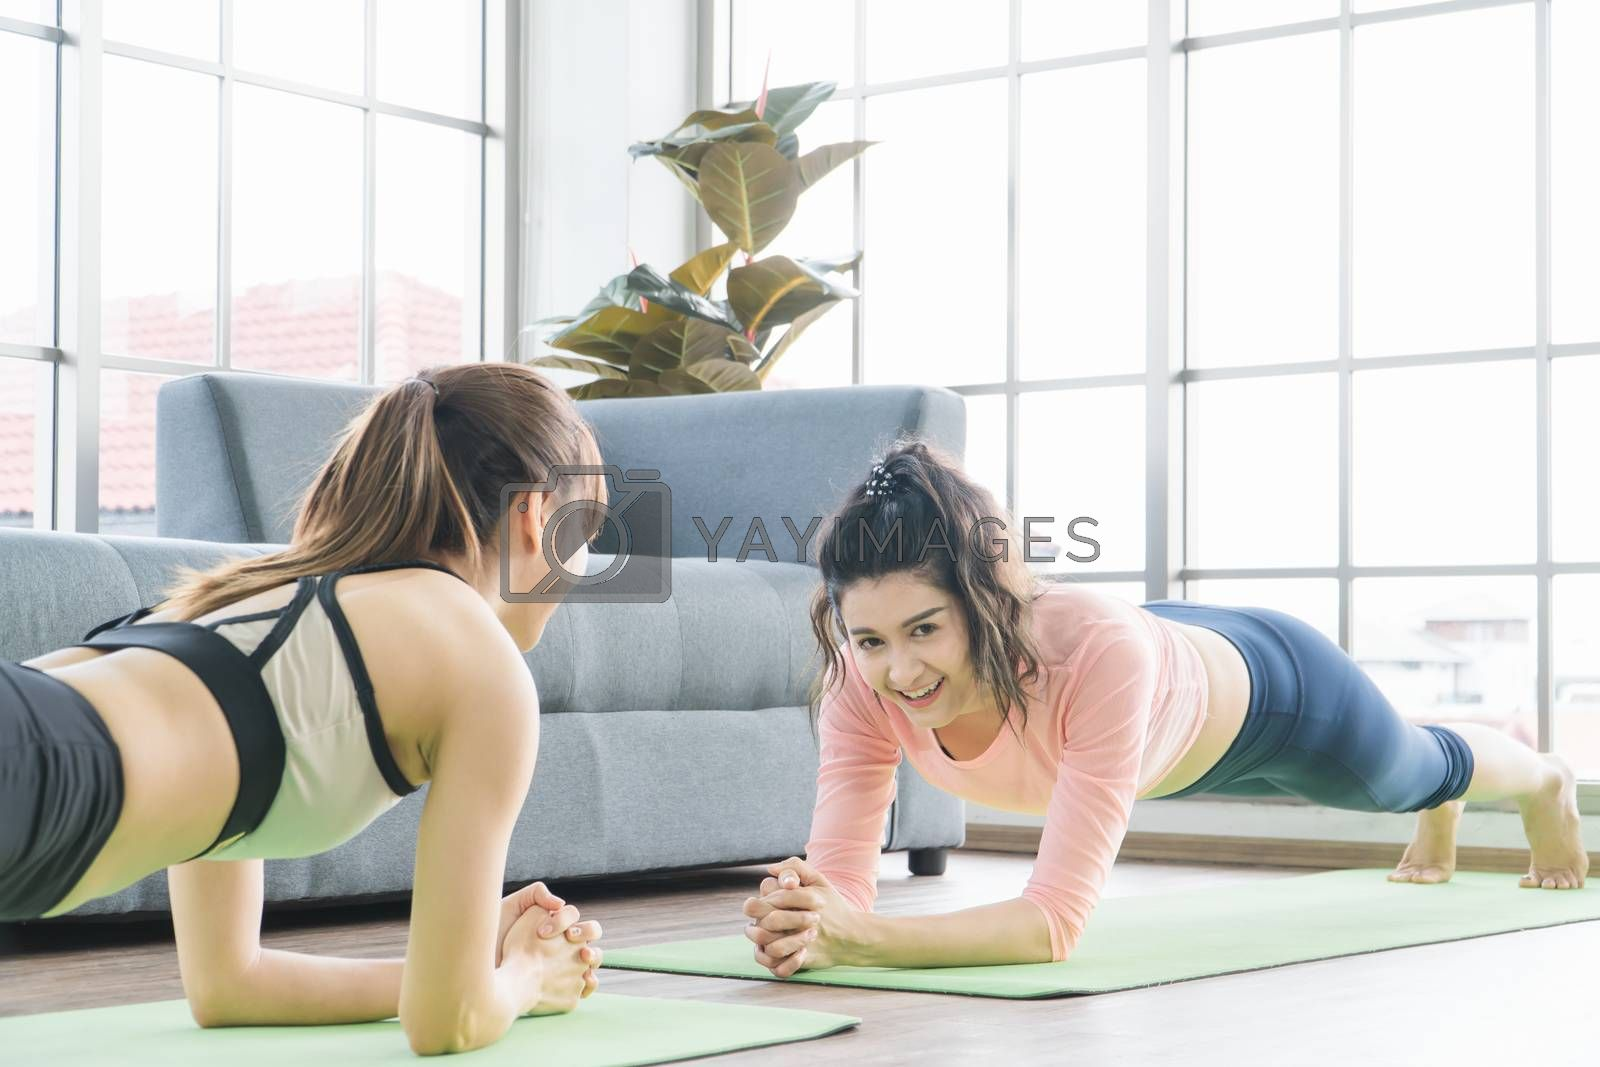 Attractive and healthy women Two Asians Exercising Stretching the muscles with yoga postures together at home. Help balance life